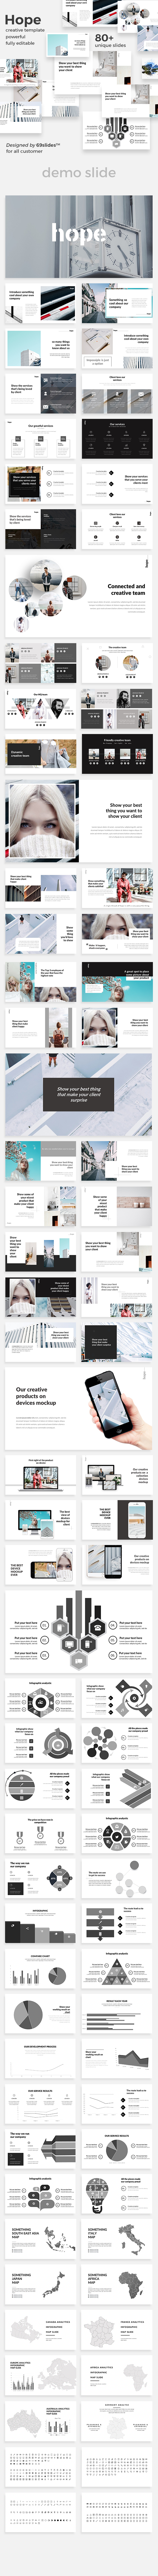 Hope Creative Keynote Template - Creative Keynote Templates